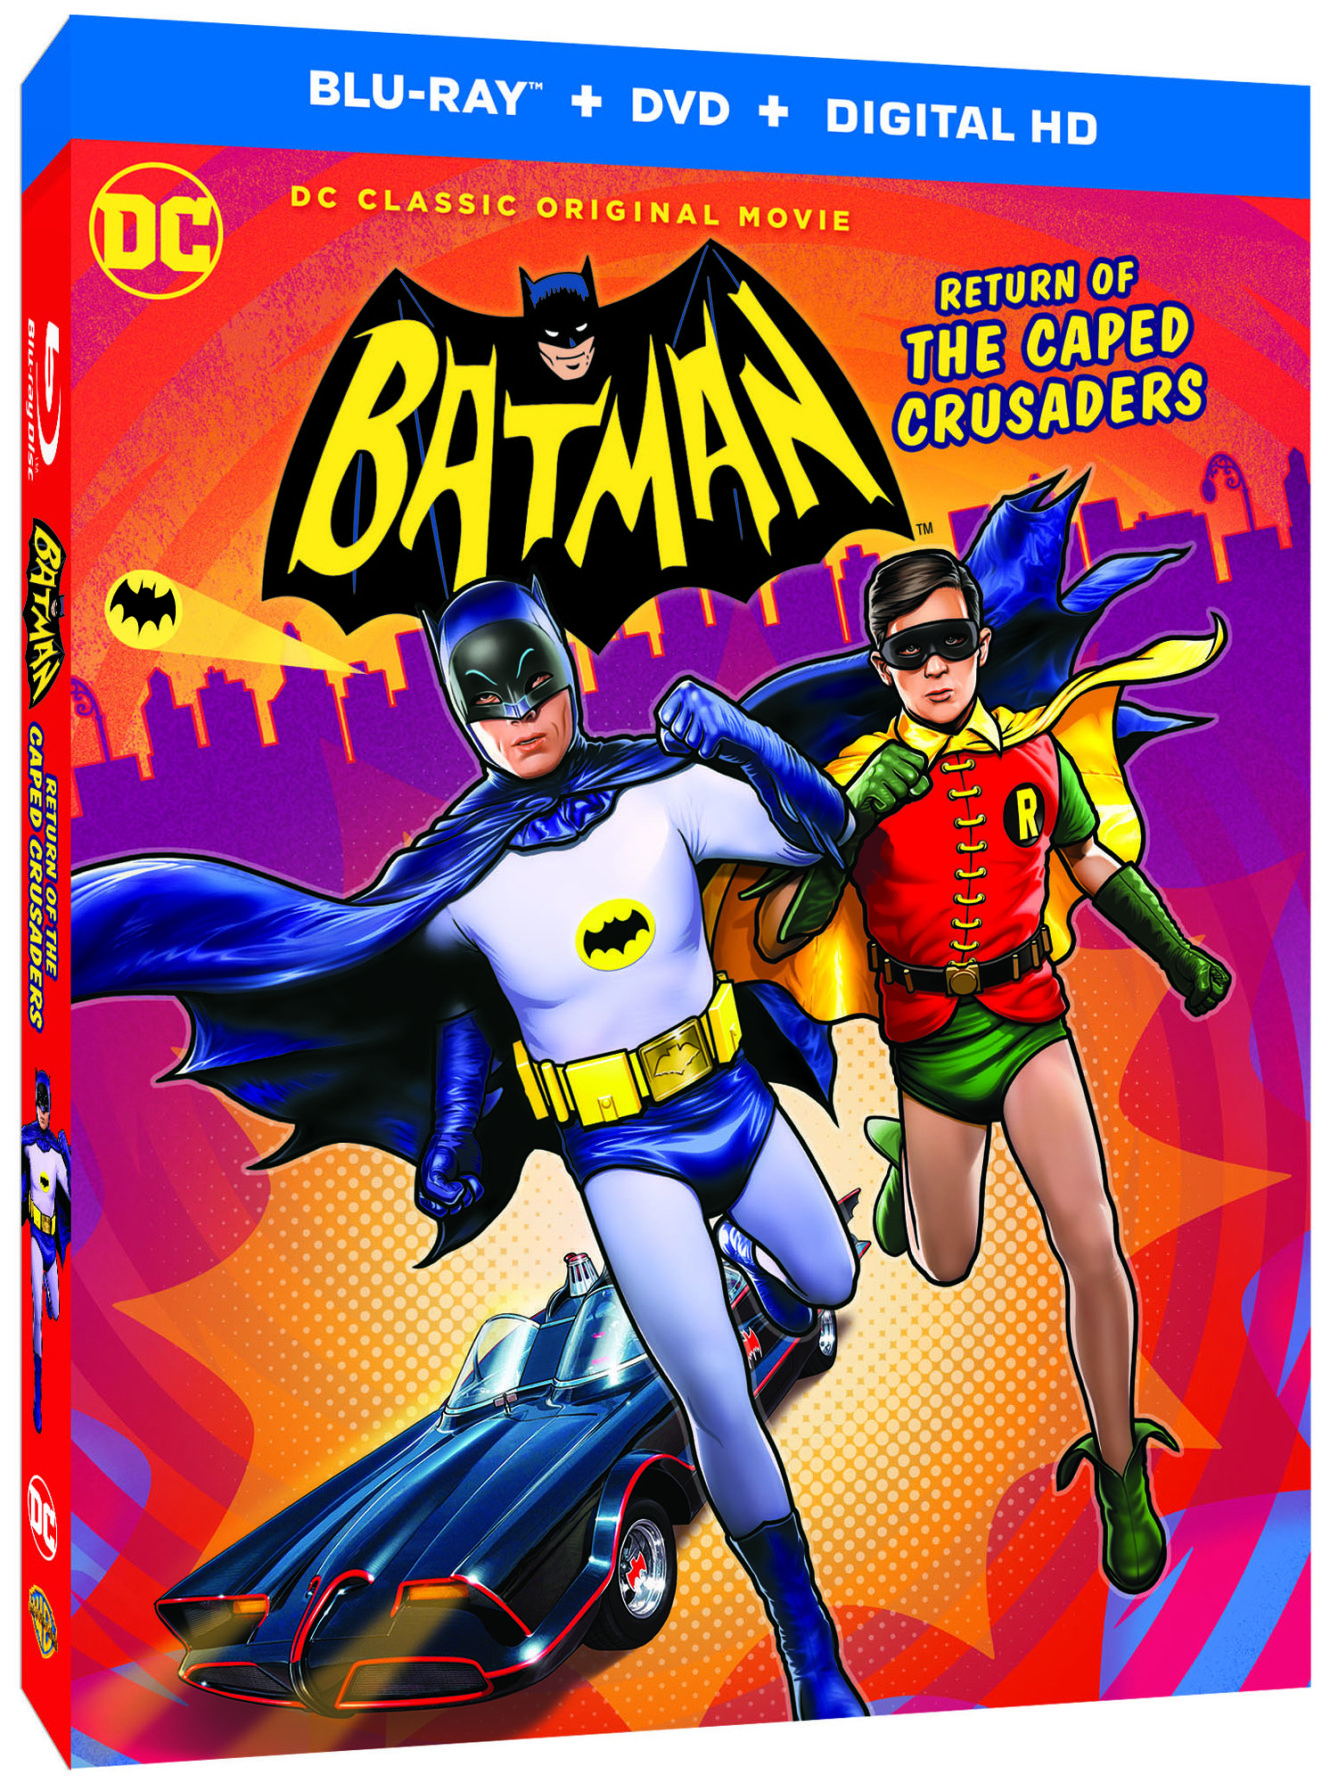 batman-return-of-the-caped-crusaders-box-art